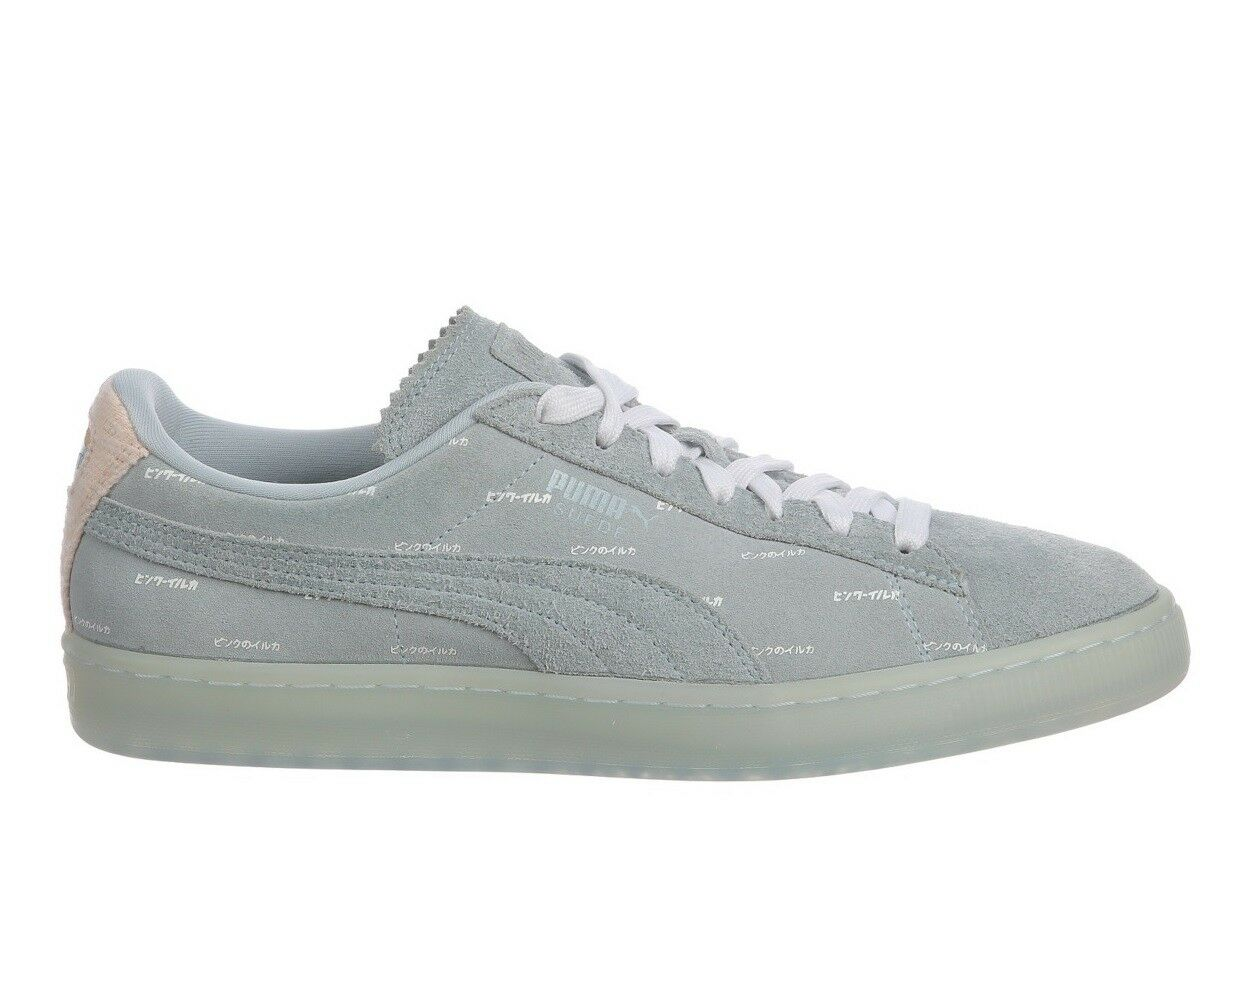 Puma Suede Classic V2 Pink Dolphin Mens 365031-02 Ether Cream Shoes Size 14